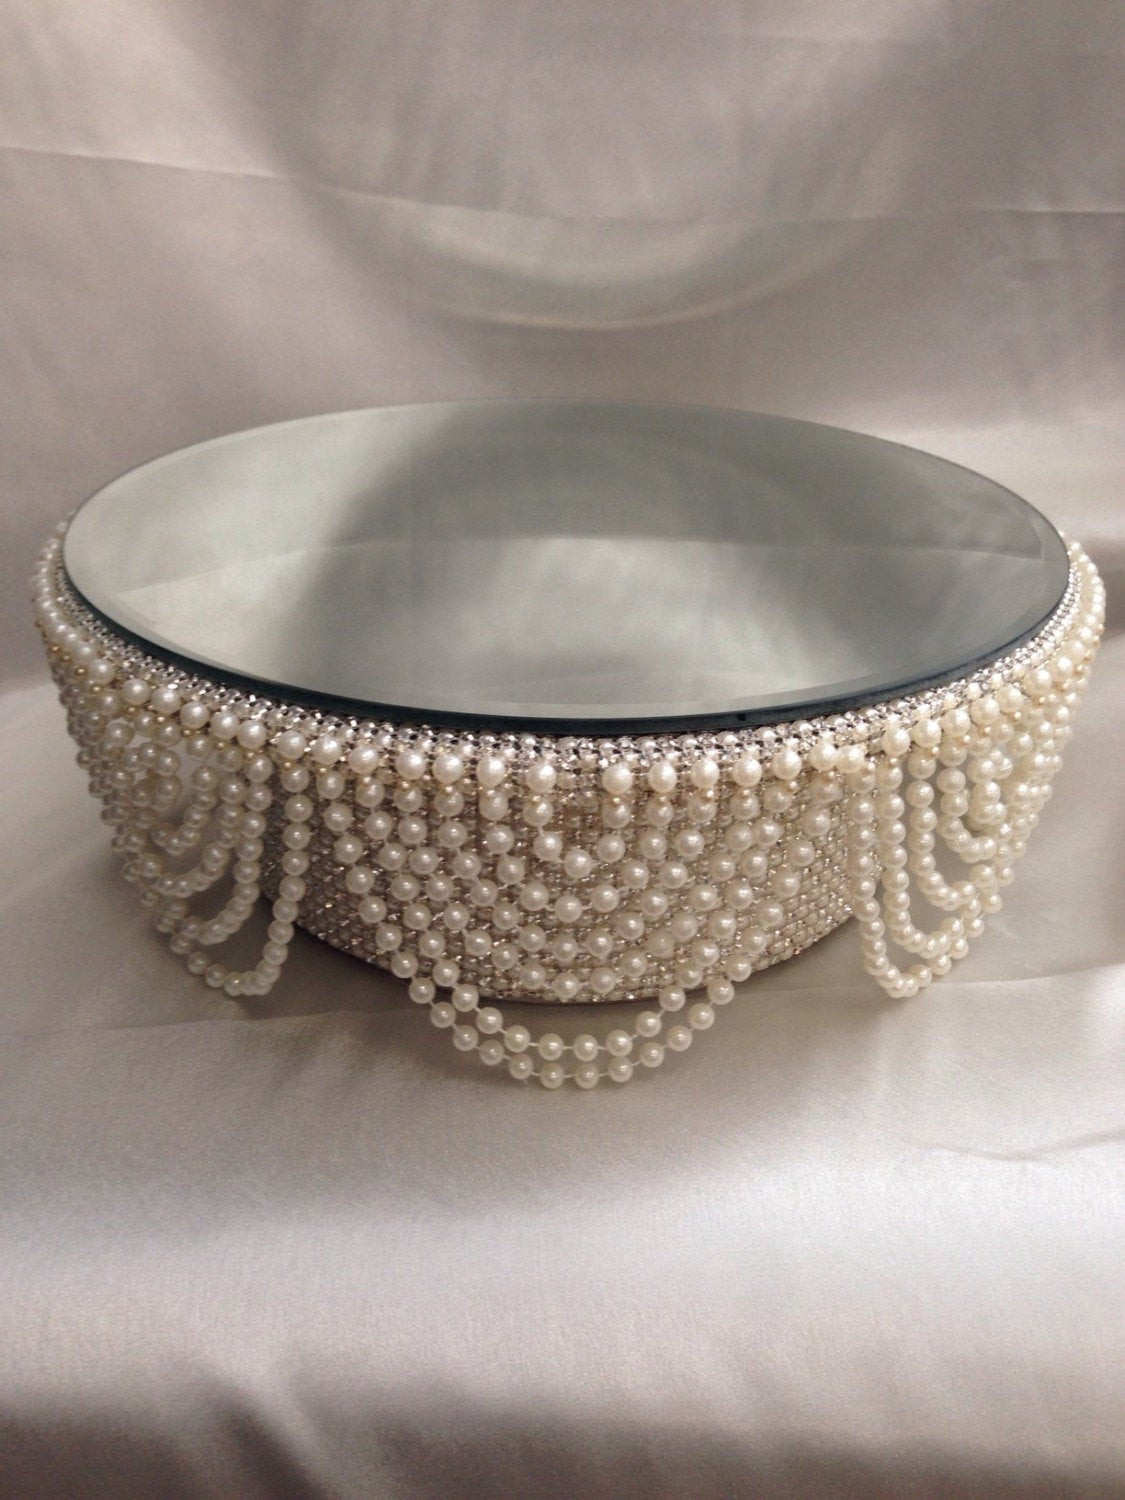 Best ideas about DIY Wedding Cake Stands . Save or Pin Pearl and crystals Drape design wedding cake stand round Now.